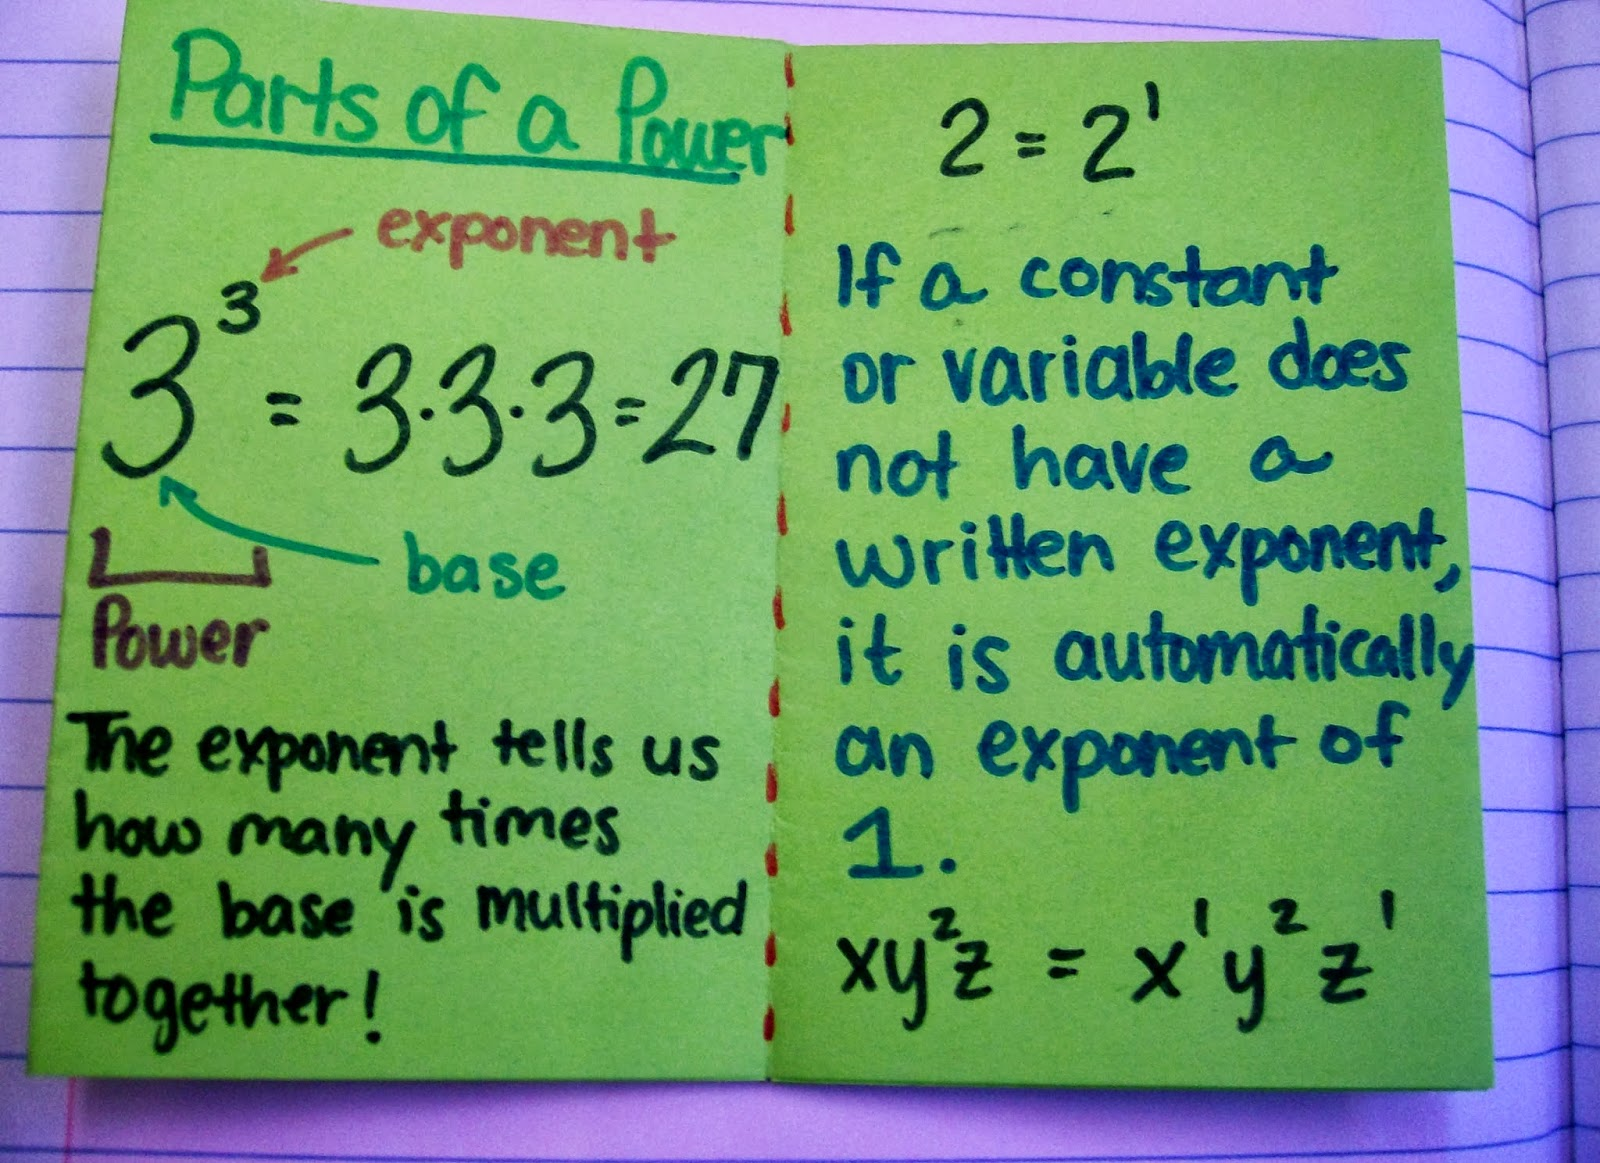 Math = Love: Ms. Haganu0026#39;s Book of Exponent Rules